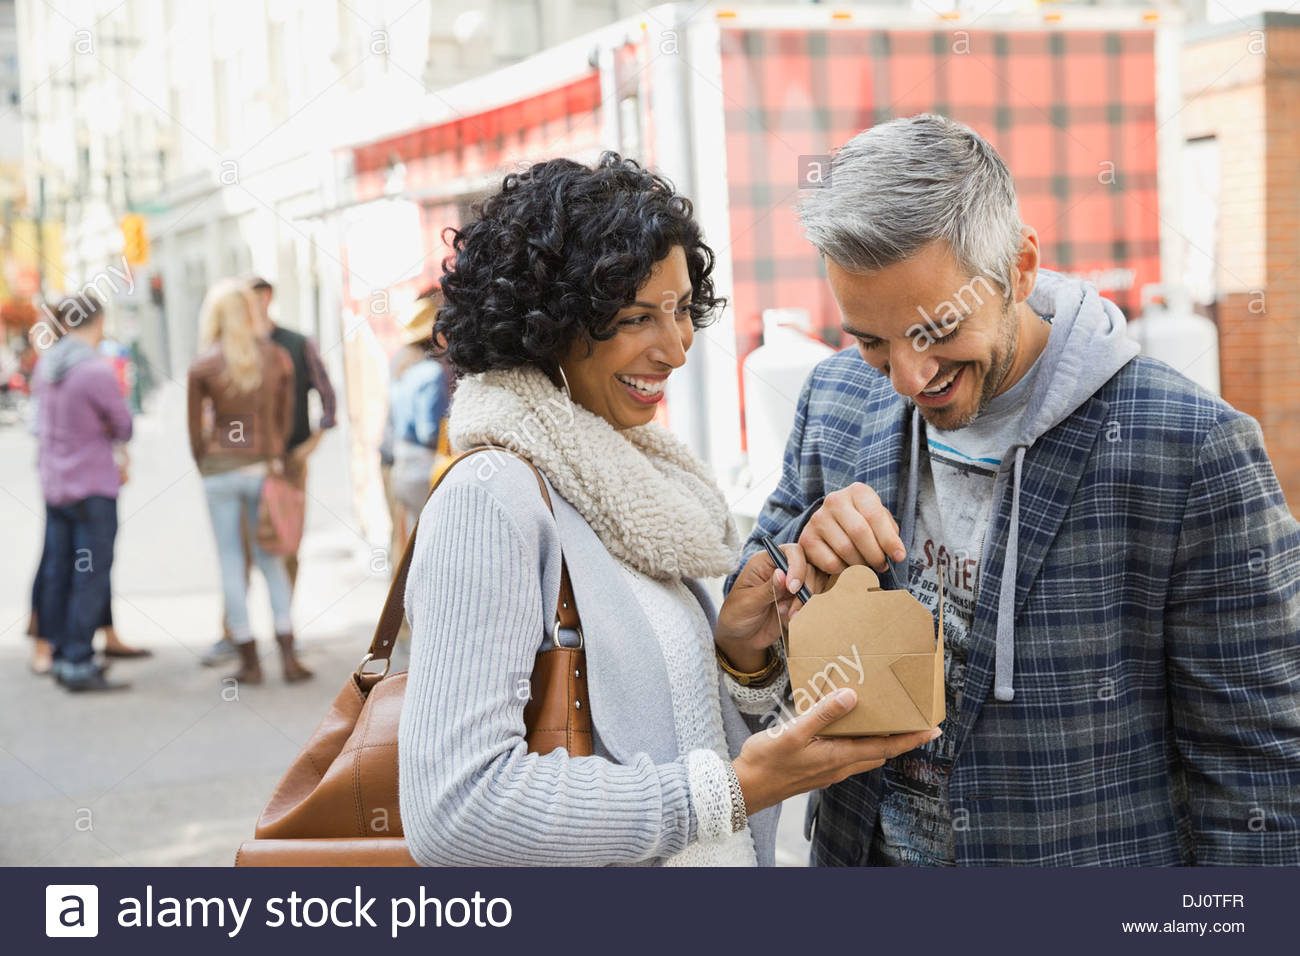 Happy couple enjoying fast food on city street - Stock Image